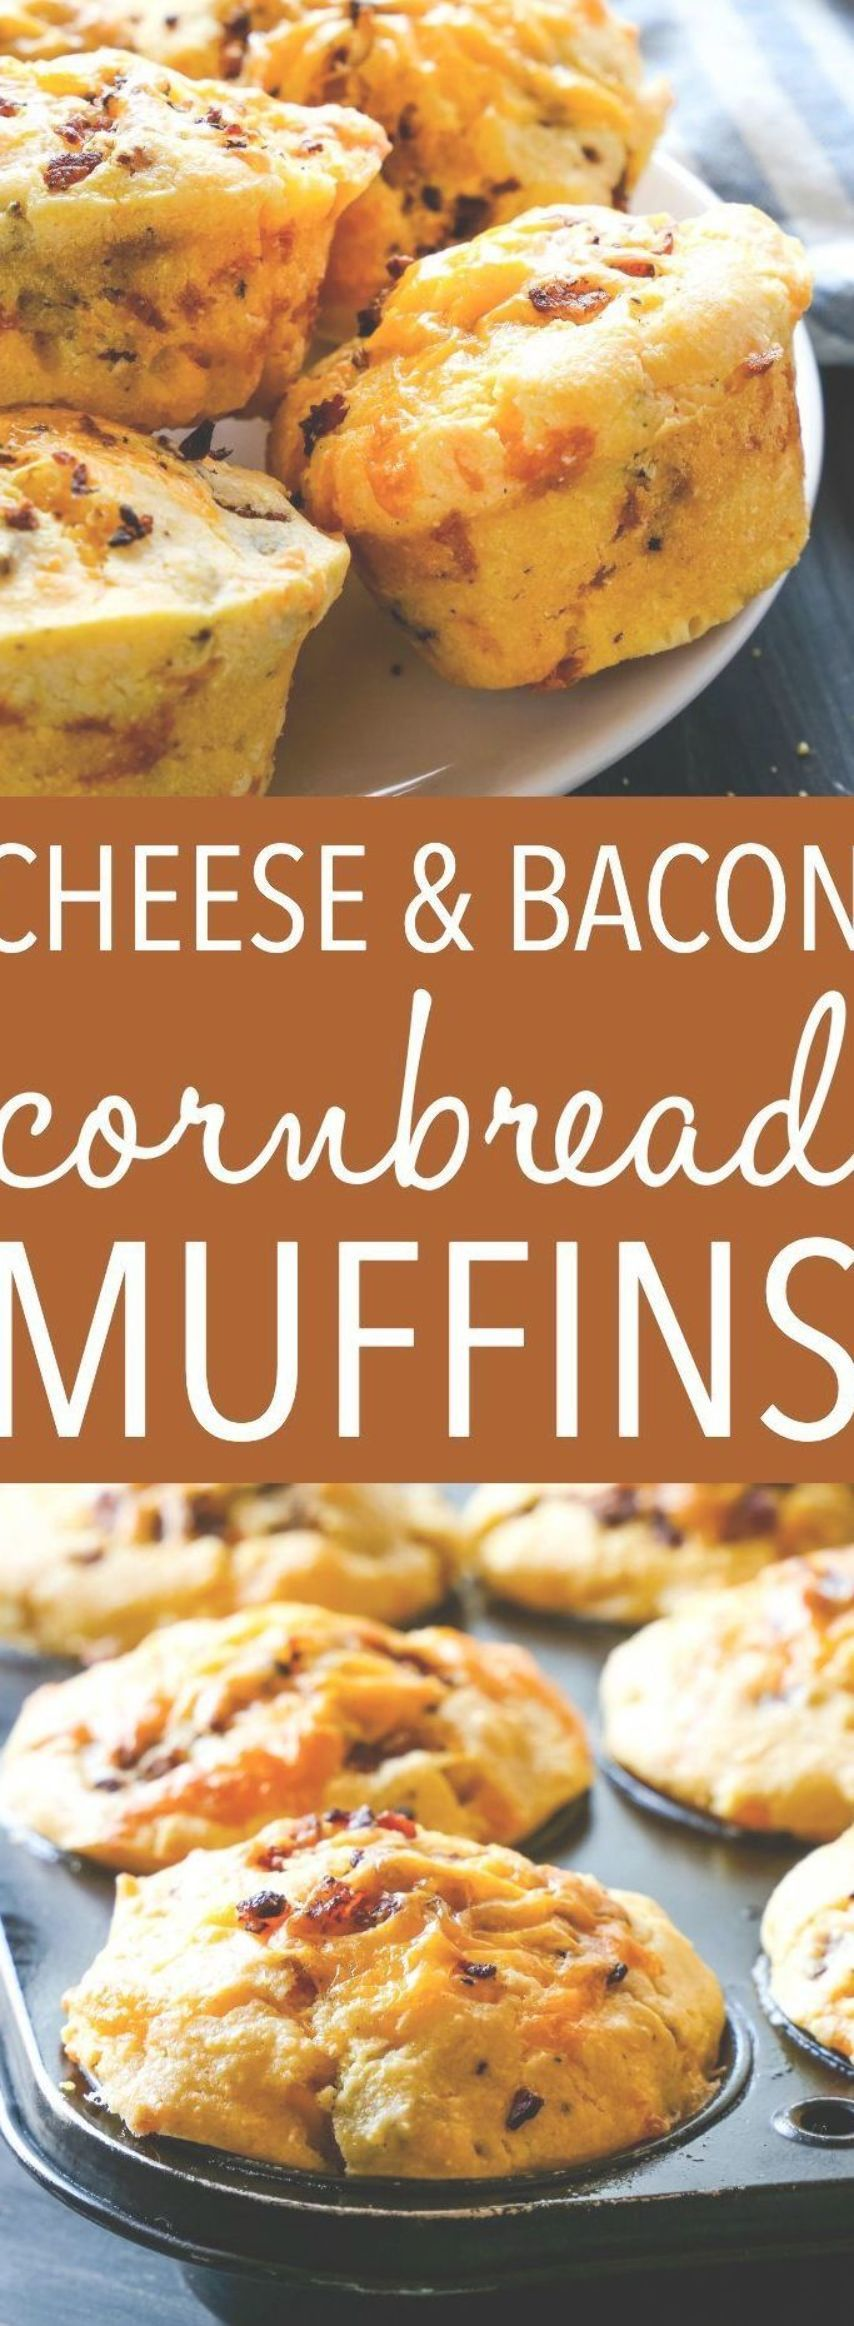 These Cheddar Cheese and Bacon Cornbread Muffins make the perfect snack or side dish for fall! Perf